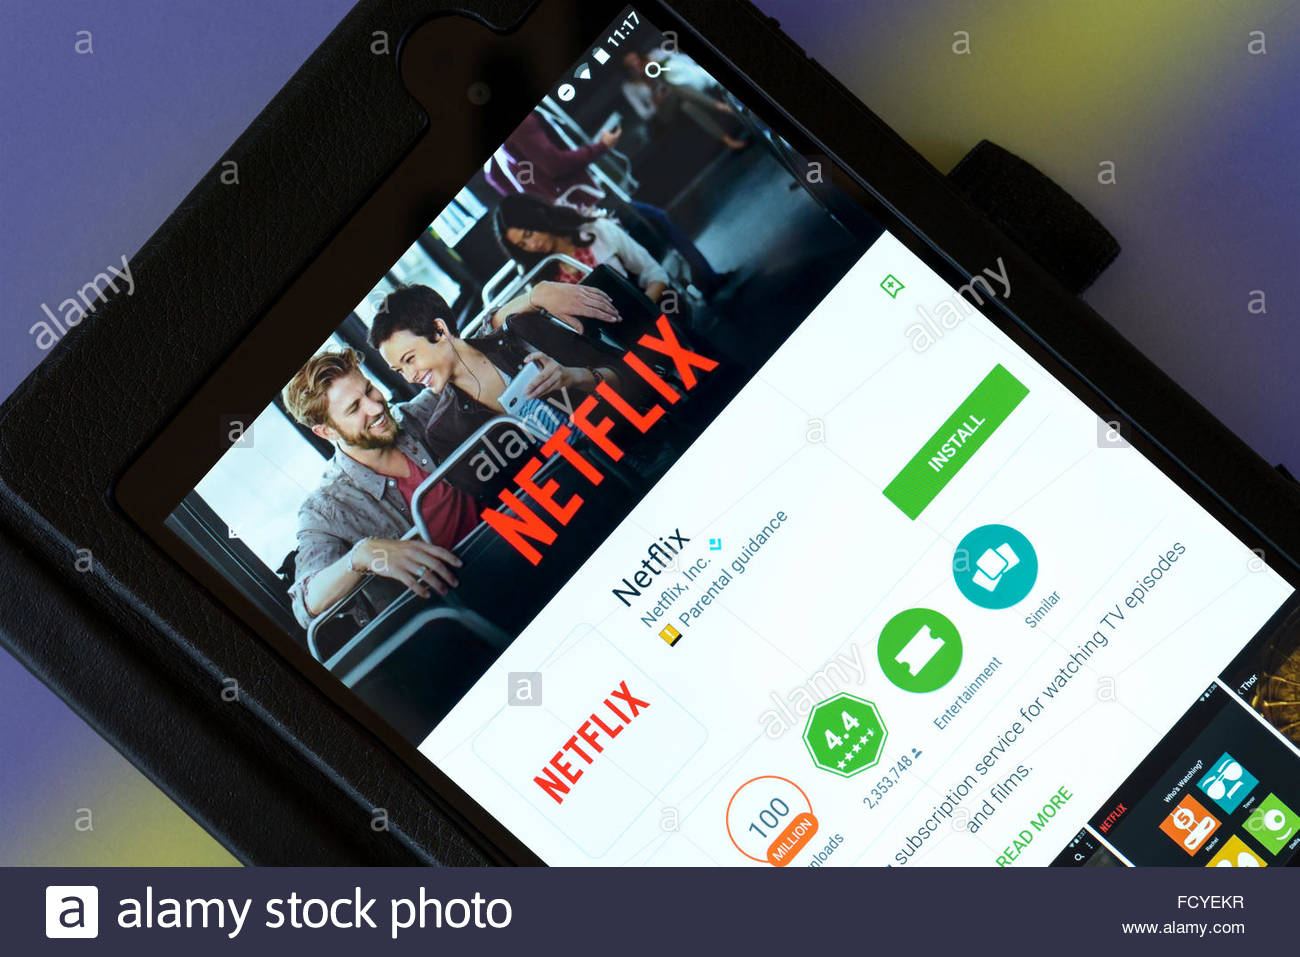 Netflix on demand streaming service, app on an android tablet PC